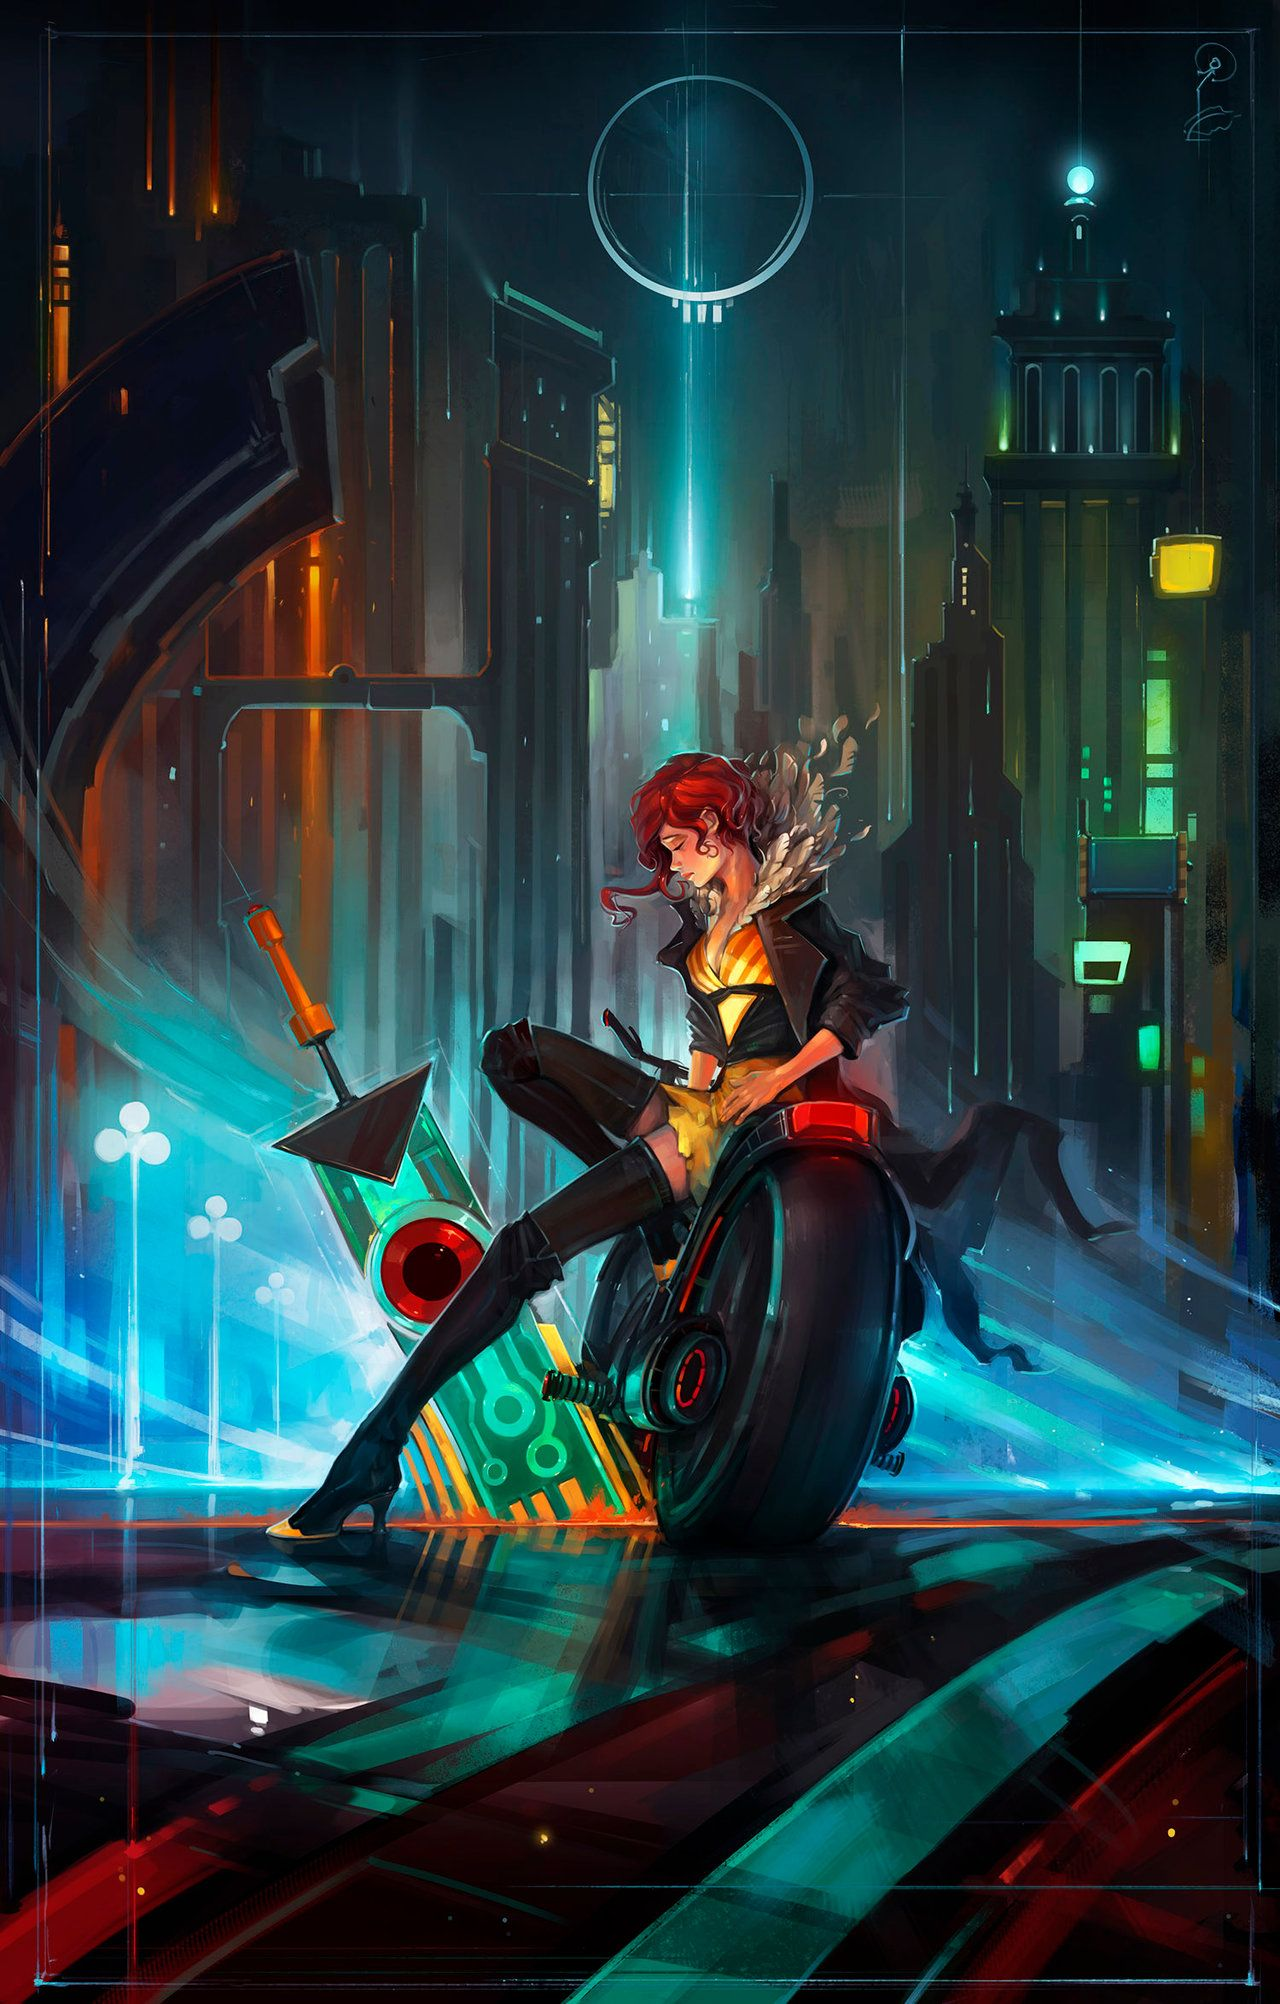 fav cellphone wallpaper. Transistor by haryarti.deviantart